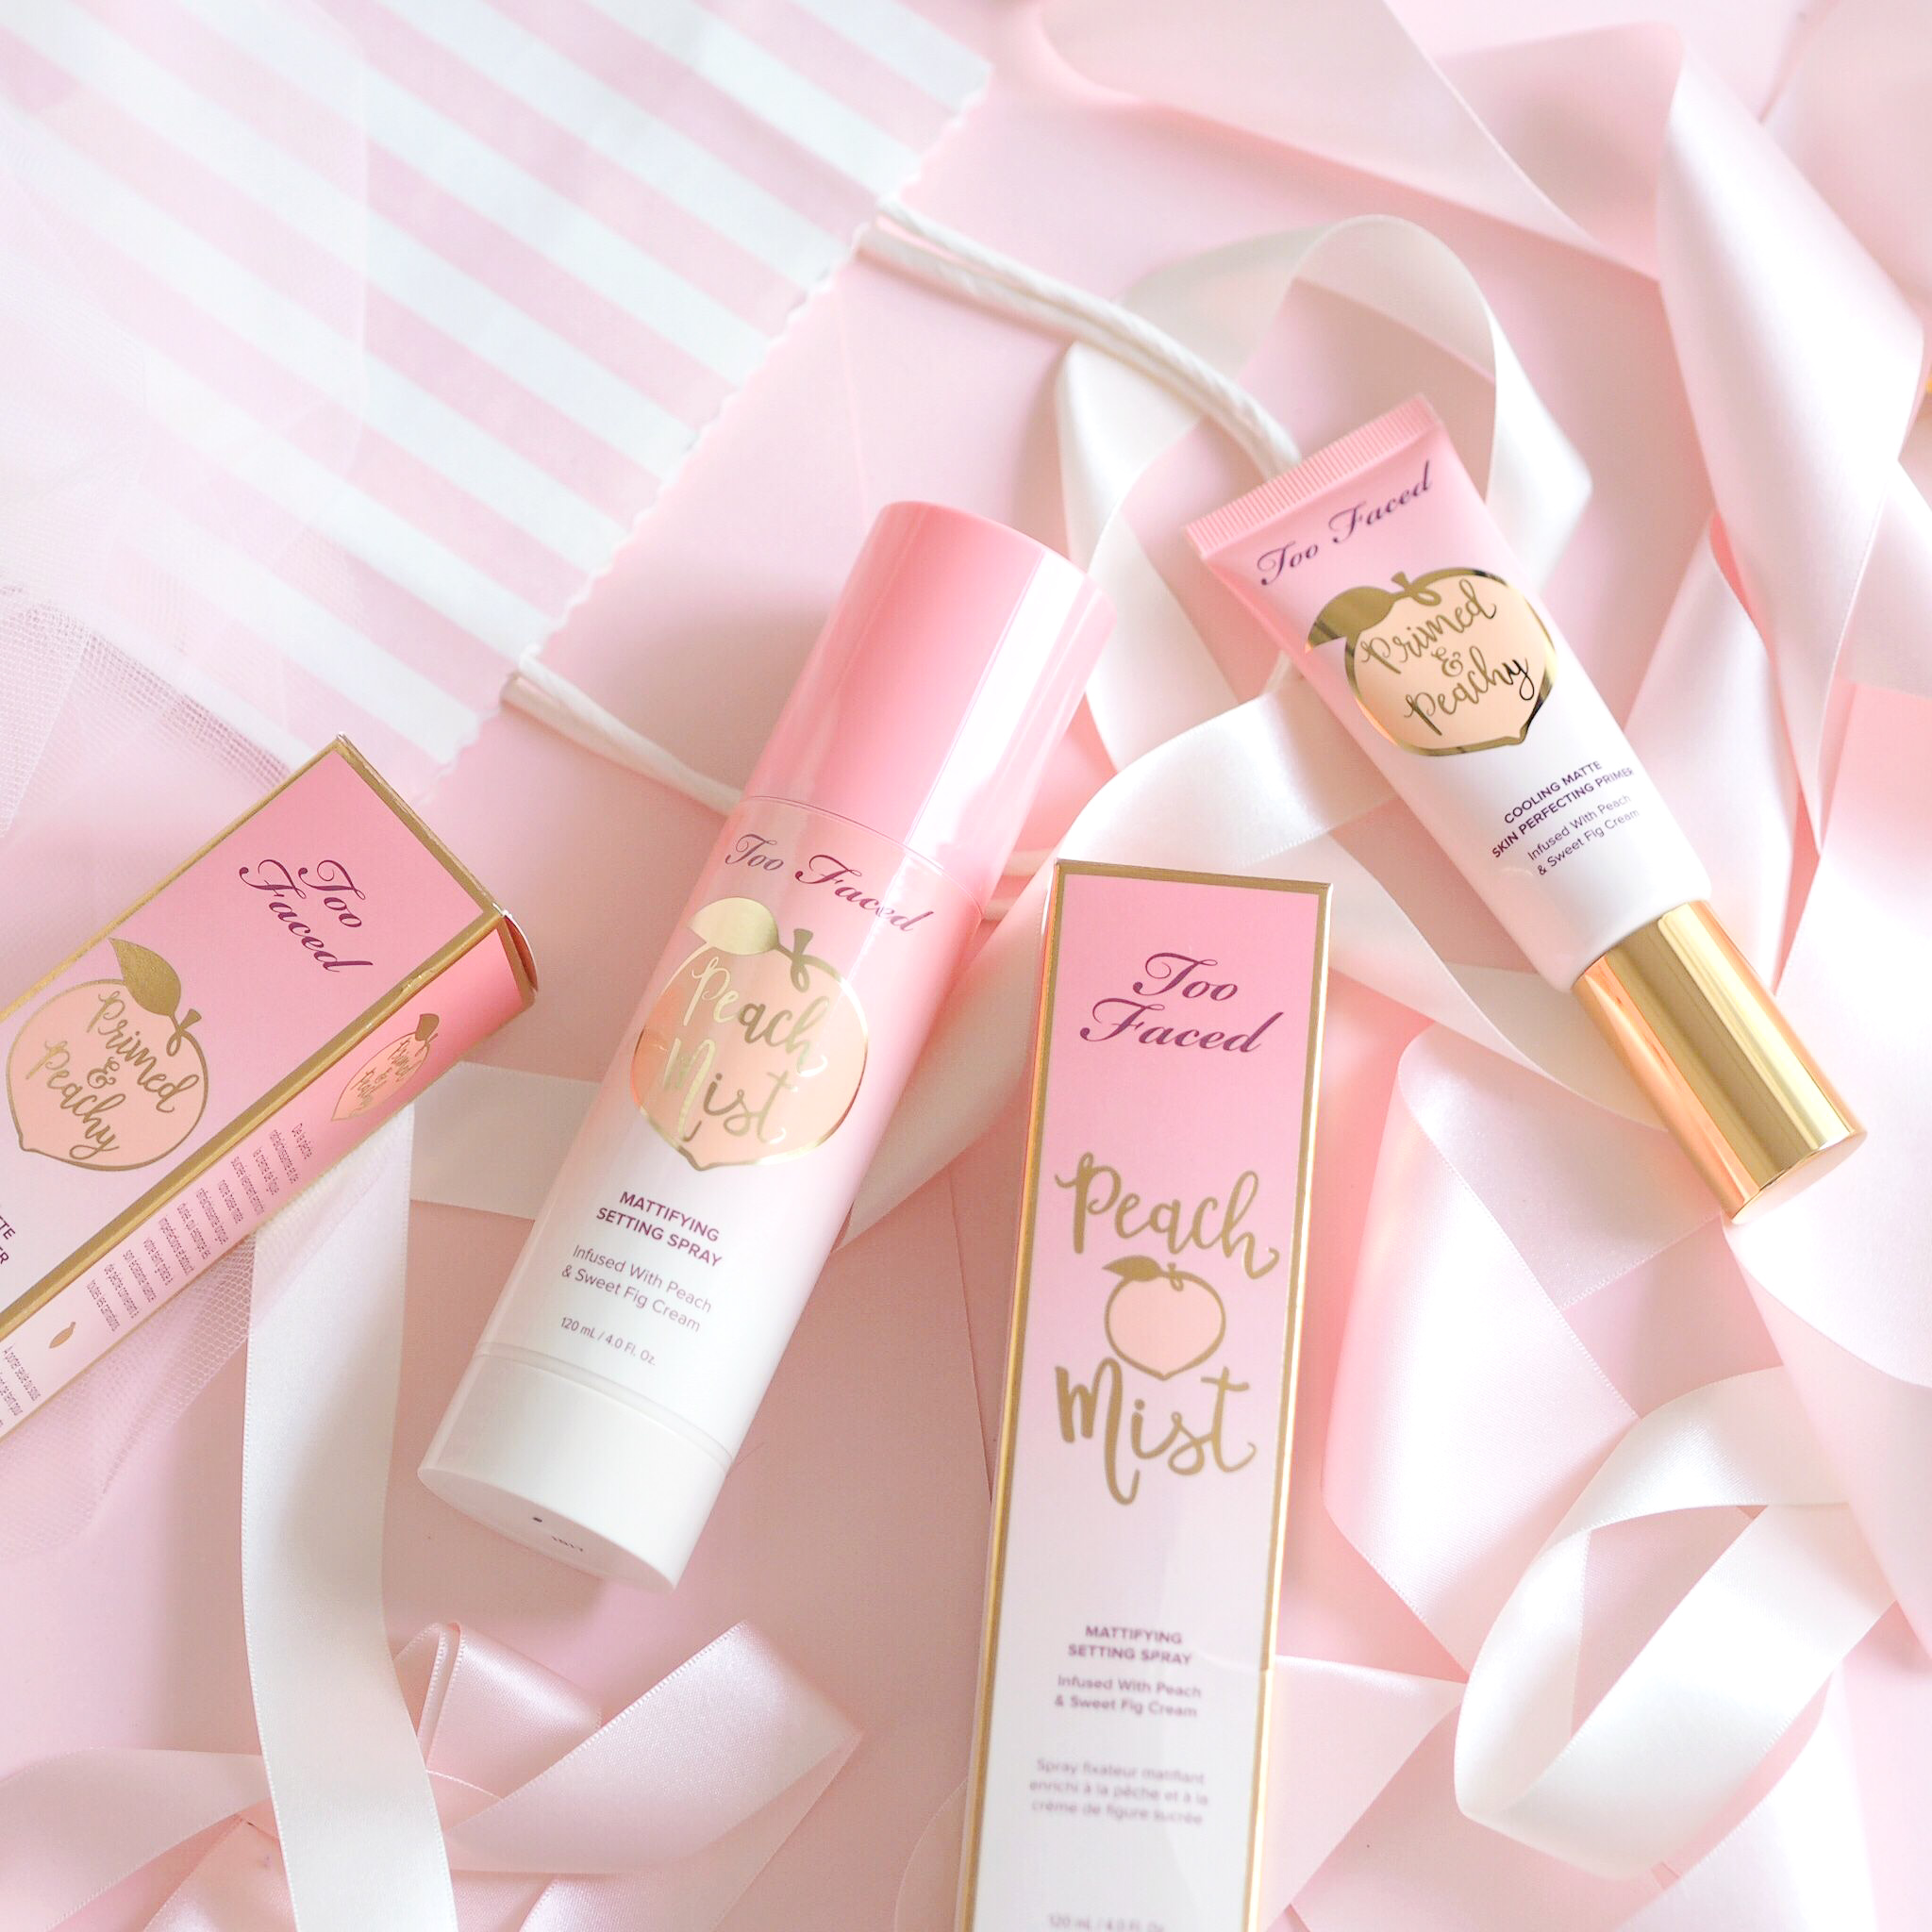 The Too Faced Carnaby Boudoir Store, Peaches & Cream Collection, Peach Mist, Primed & Peachy Primer | Love Catherine